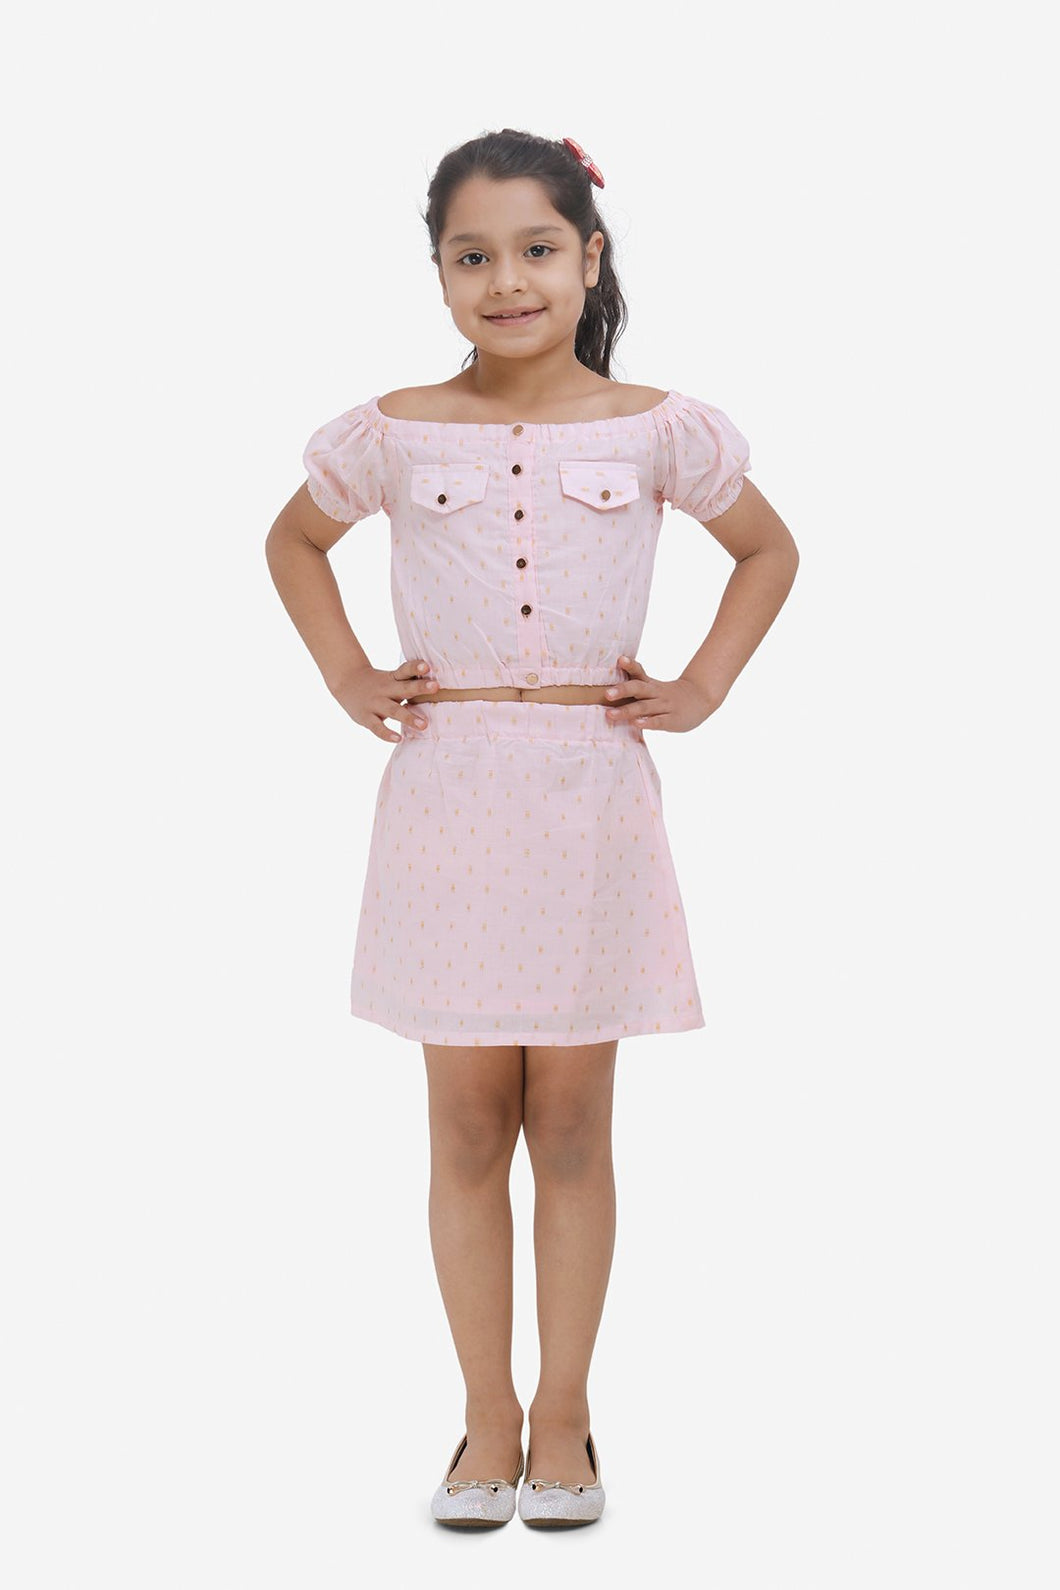 Fairies Forever Dot Skirt and Top Set-Pink and Gold